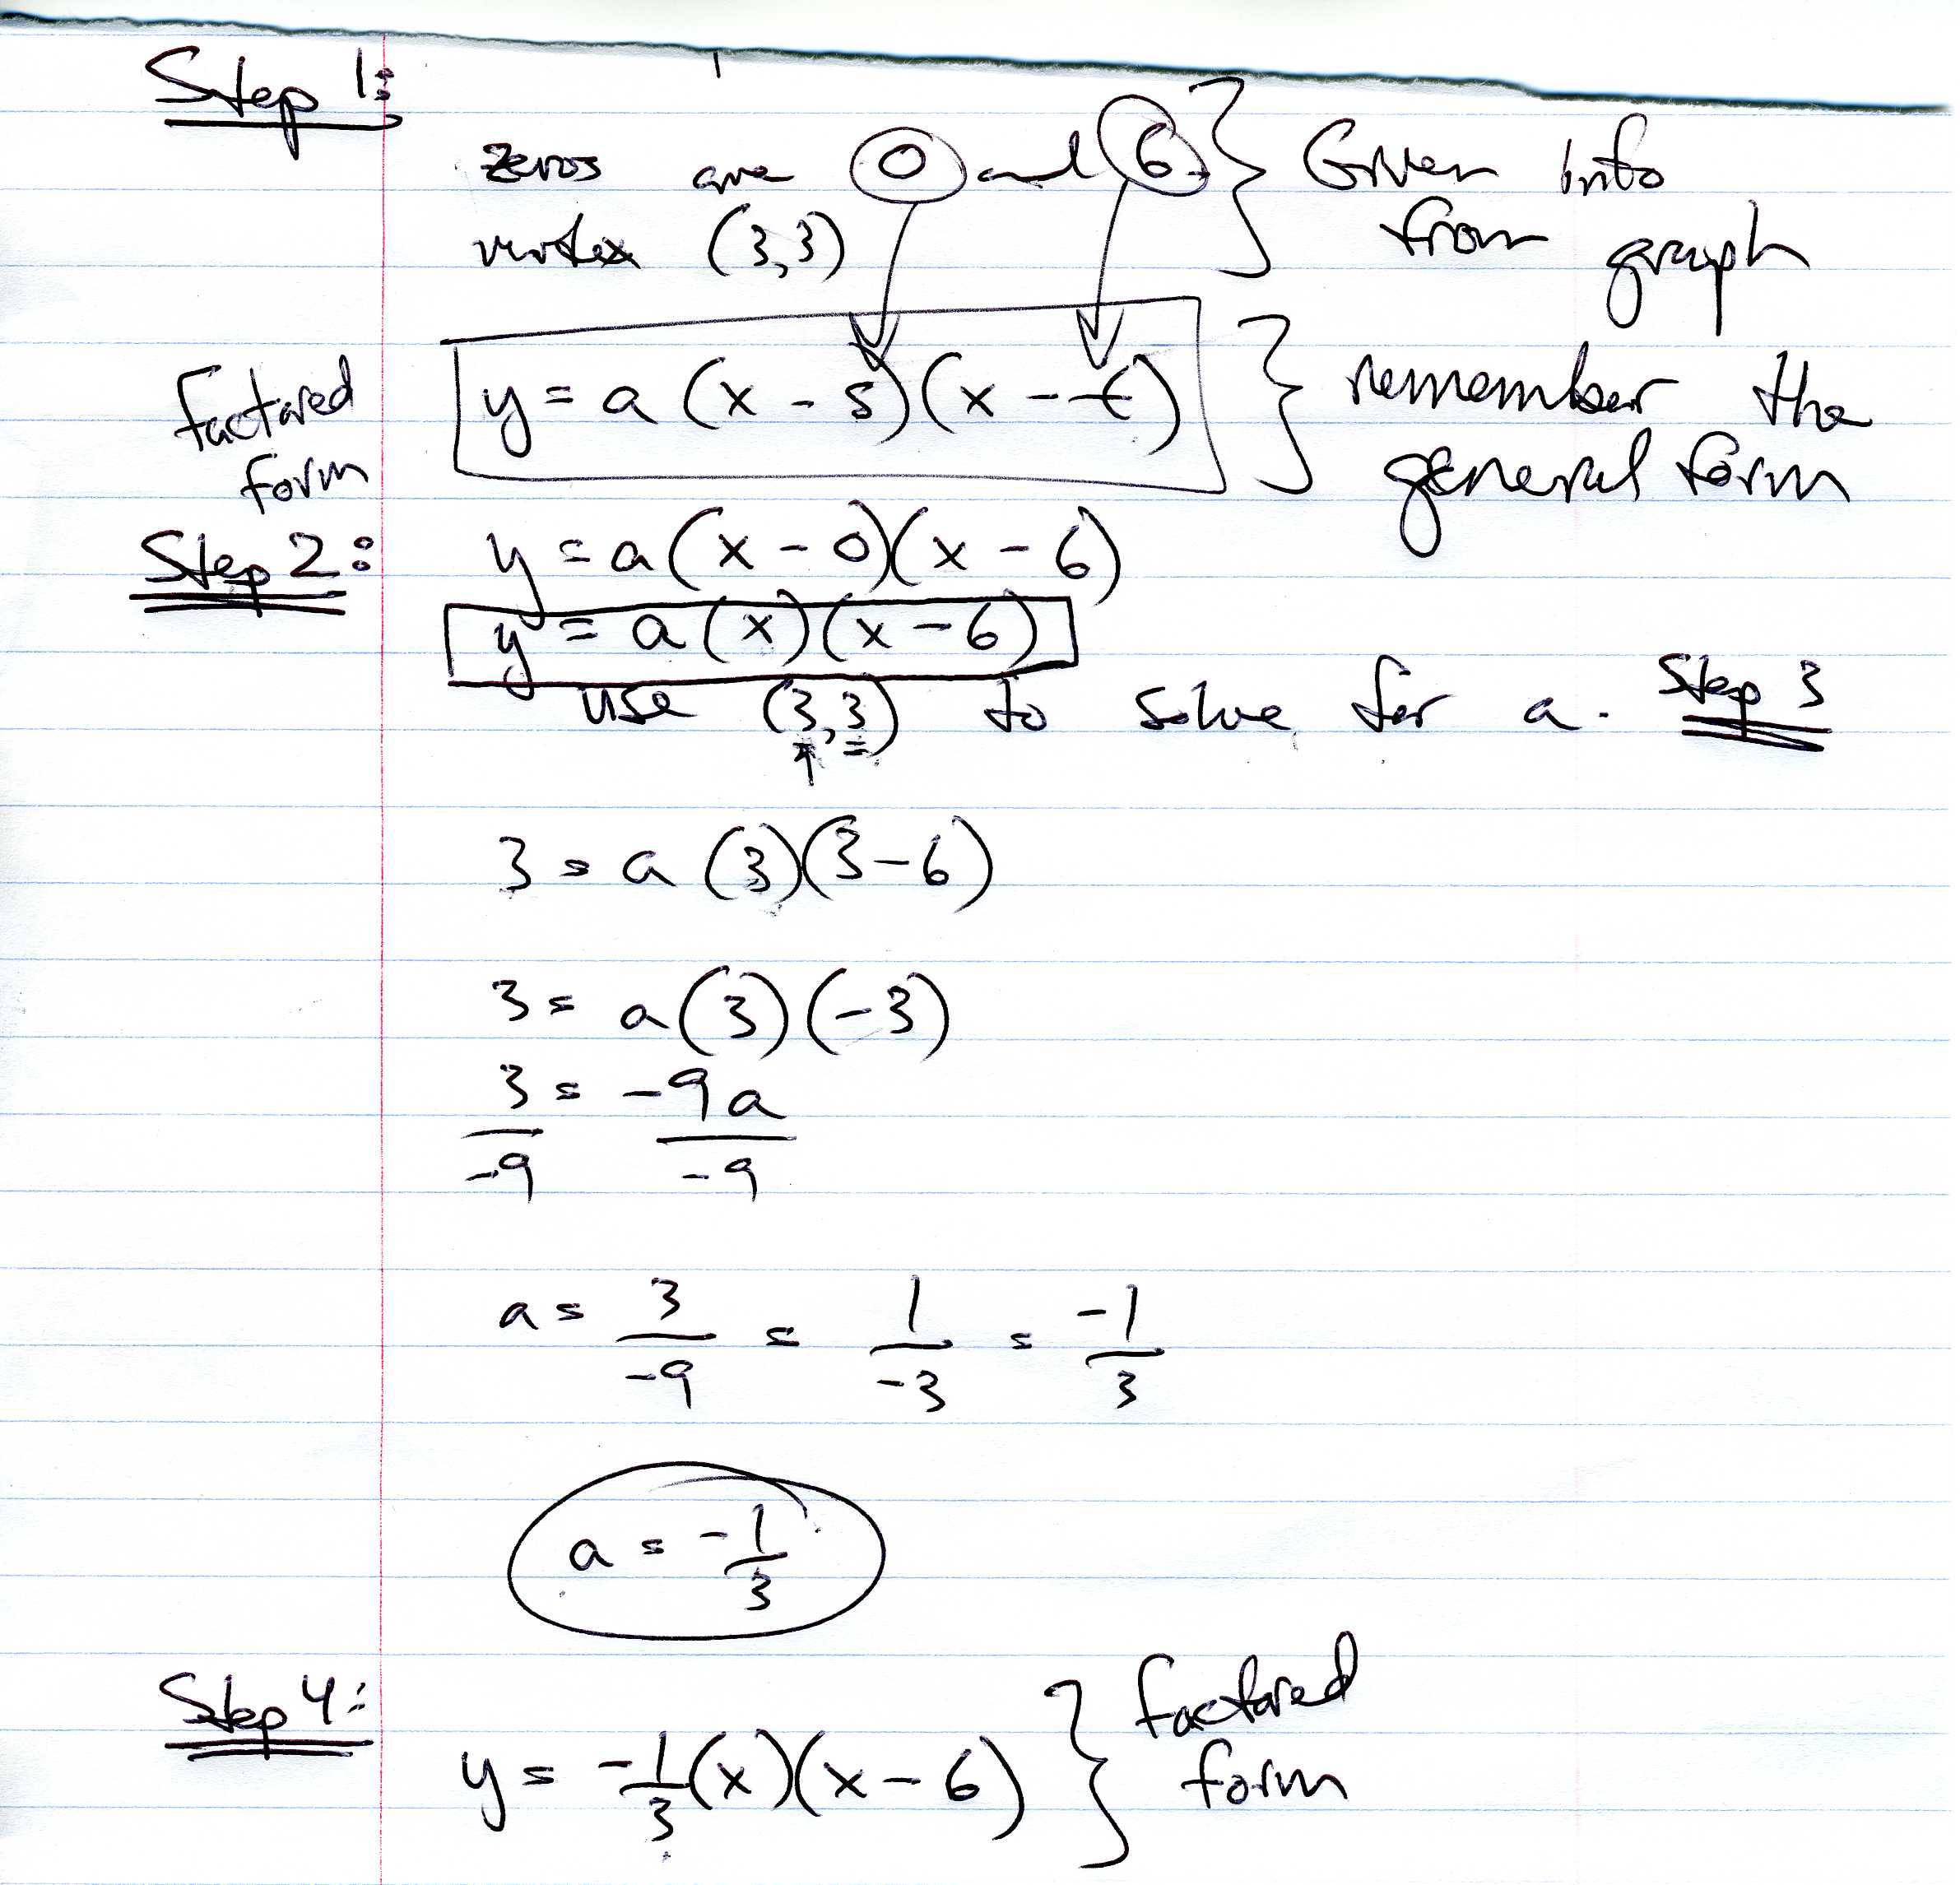 math assignments An explanation of how to create, edit, and customize assignments for your  classes on khan academy.